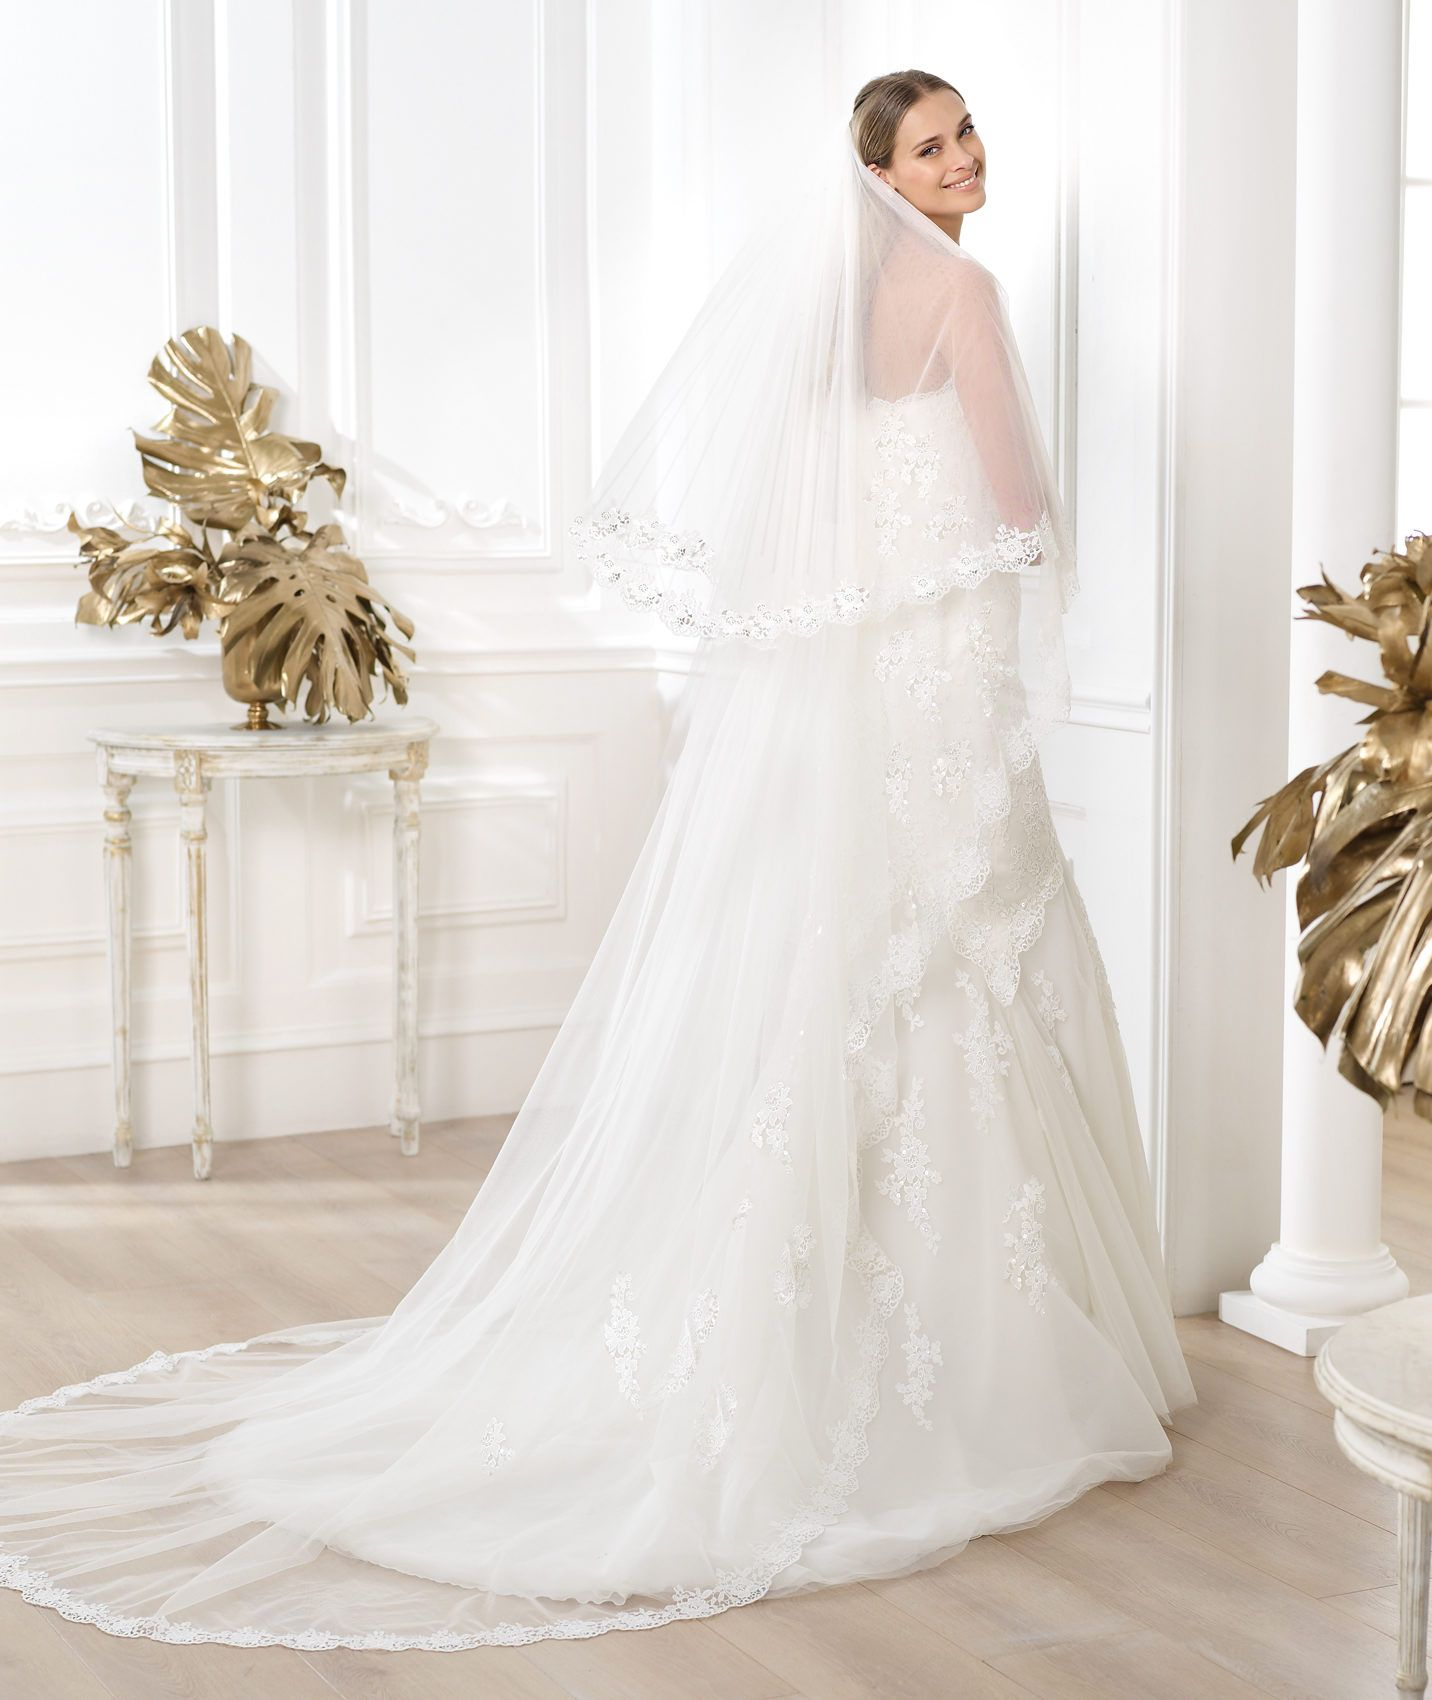 Pronovias presents the lanete wedding dress fashion